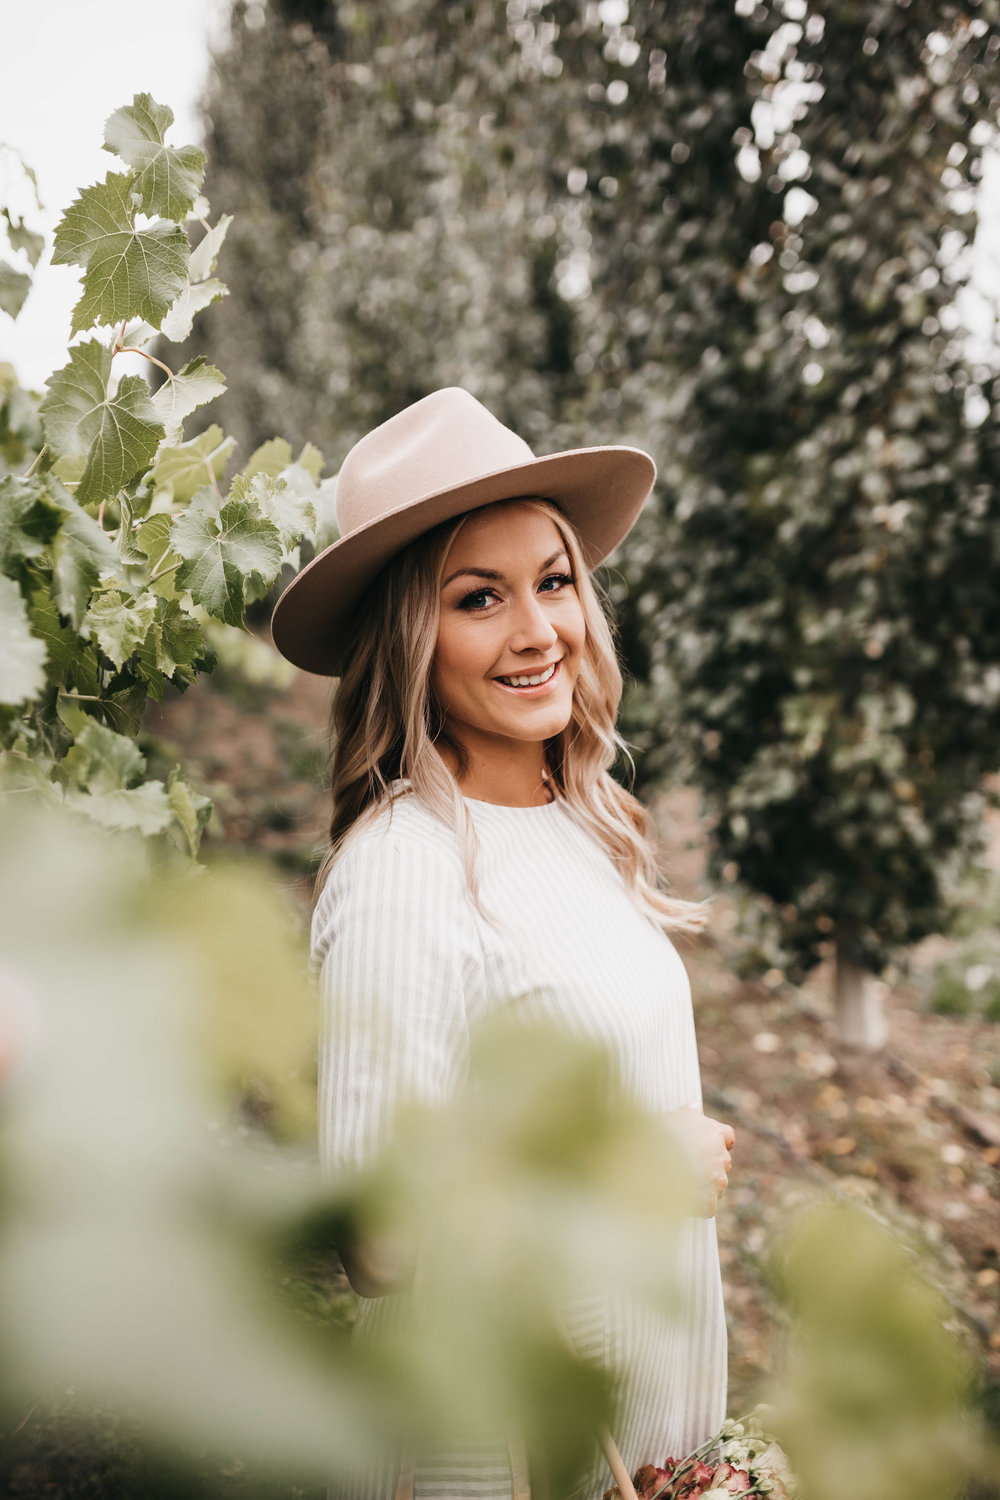 Hey there! - I'm Chelsea. My love of nature and creating with my hands led me to floral design. Planning my own wedding sparked a passion for wedding design and I love working with couples to tell their love stories through flowers!